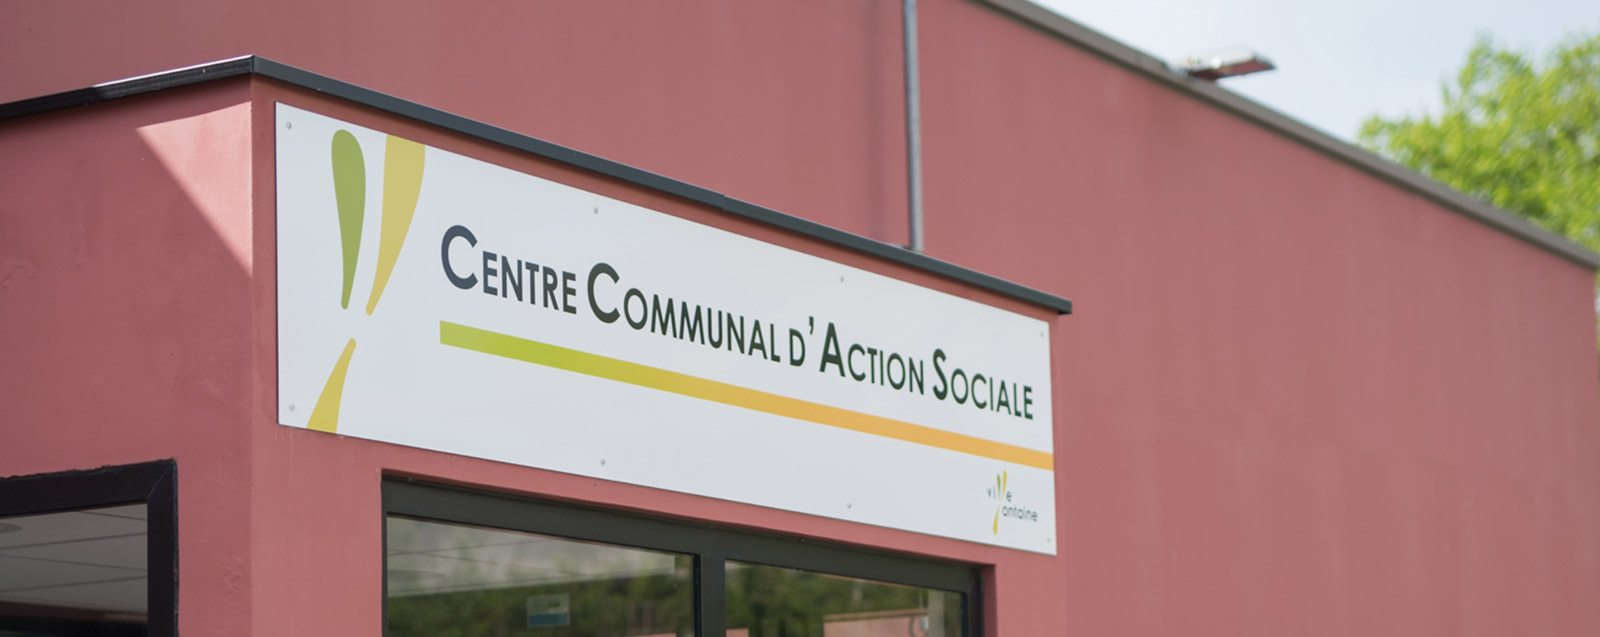 Centre communal d'action sociale Villefontaine